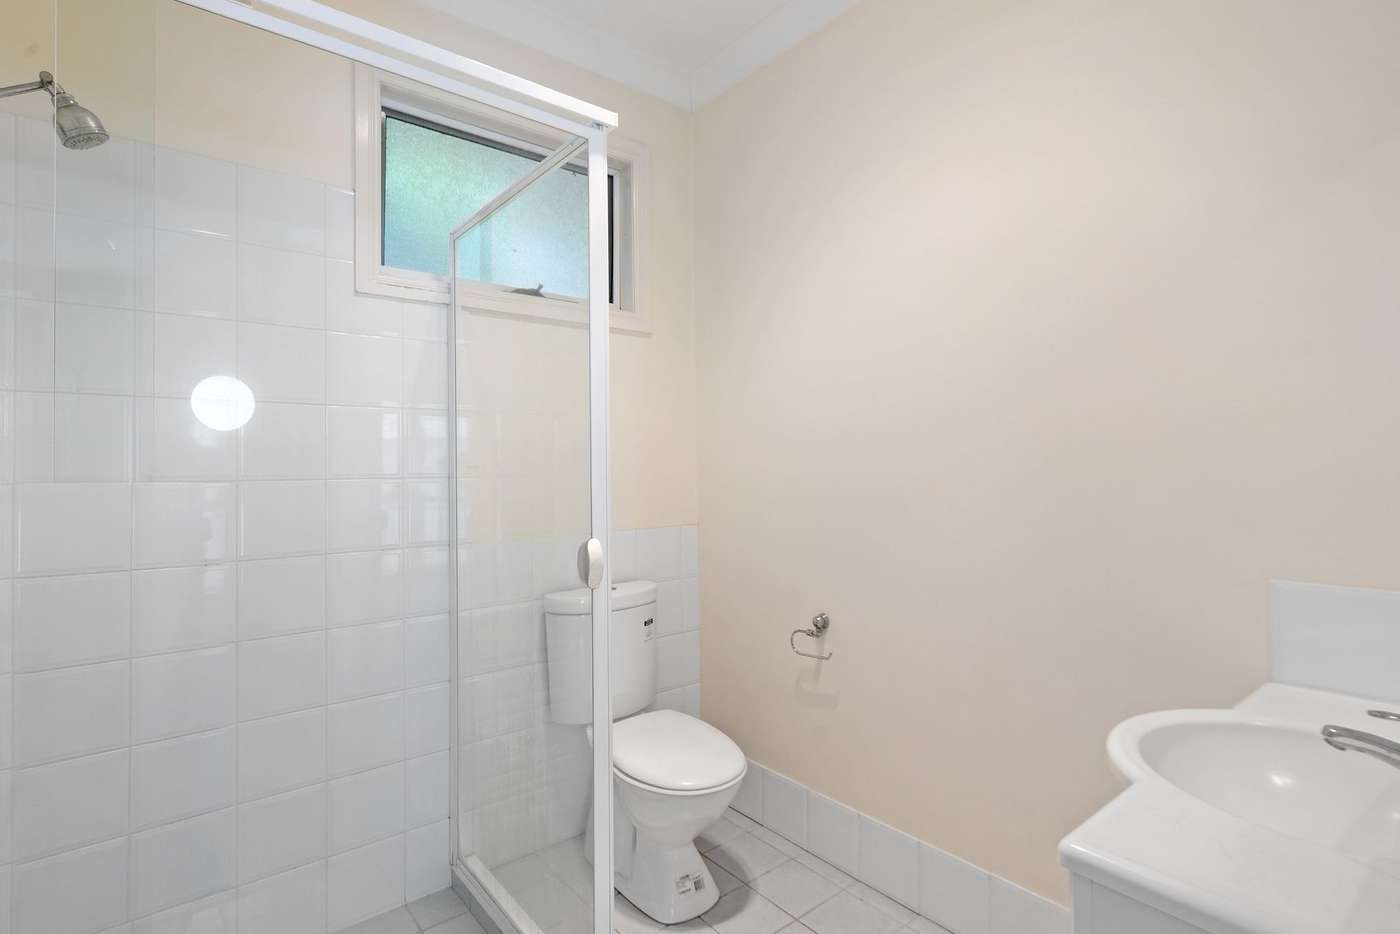 Sixth view of Homely unit listing, 2/86 Invermore Street, Mount Gravatt East QLD 4122